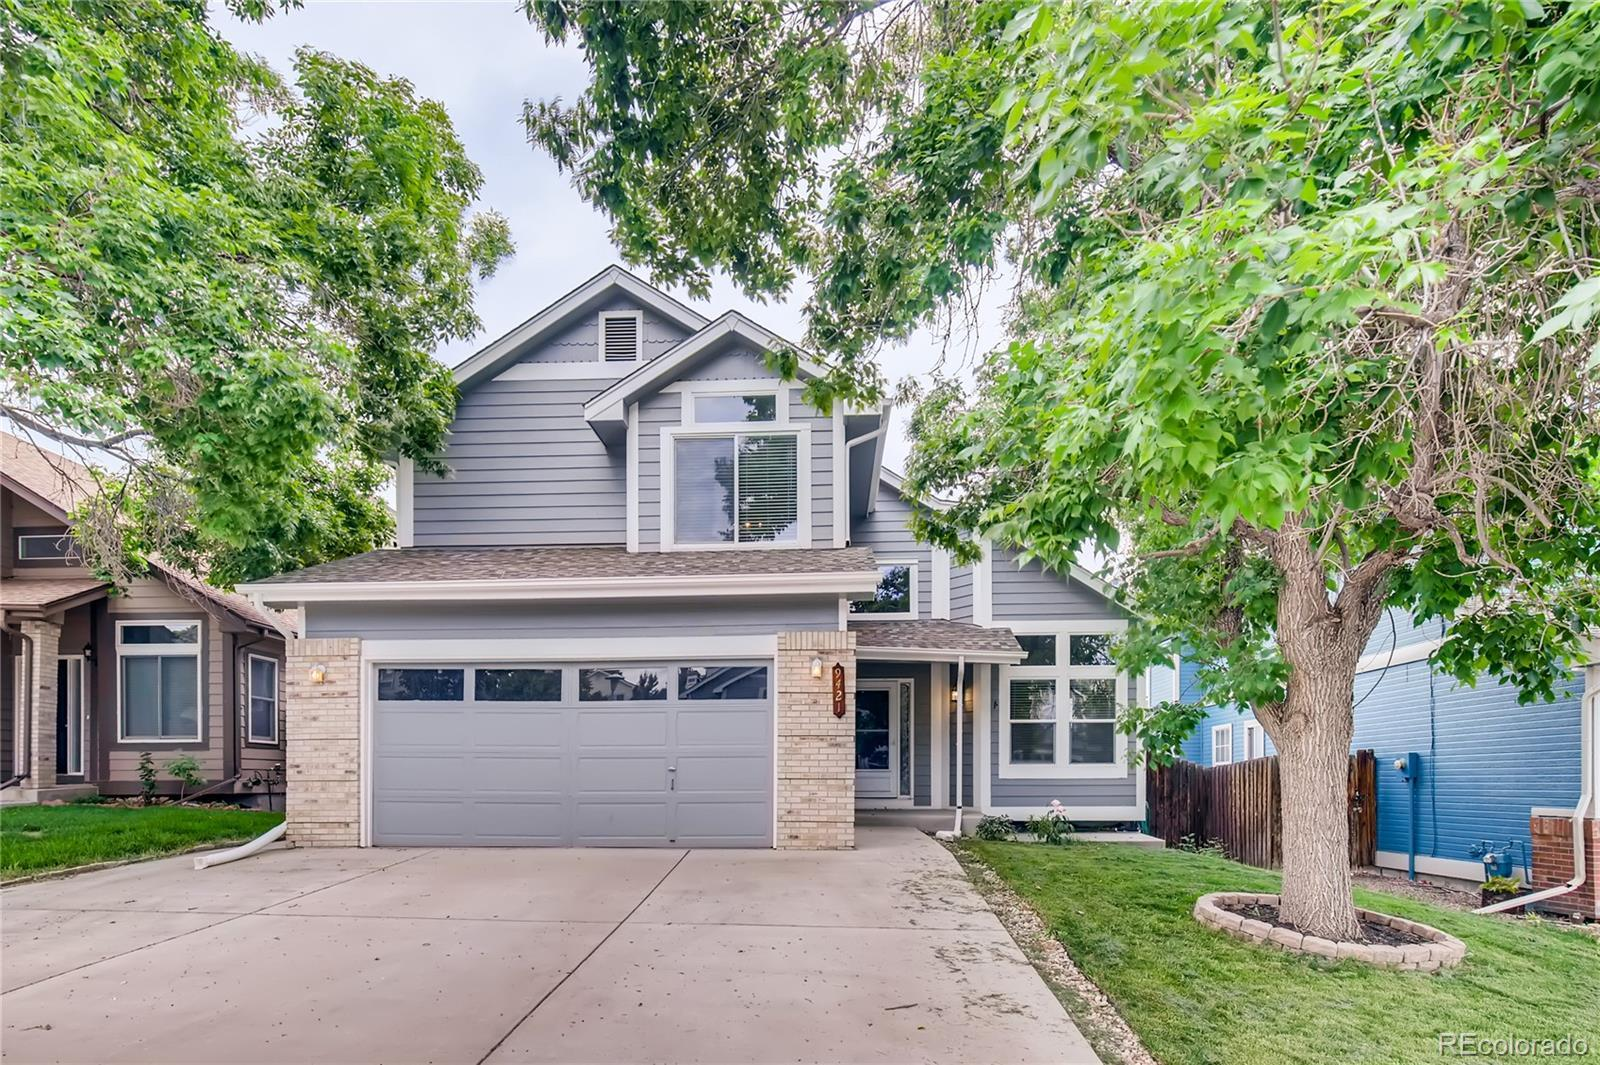 9421 W 104th Way, Westminster, CO 80021 - #: 8215644